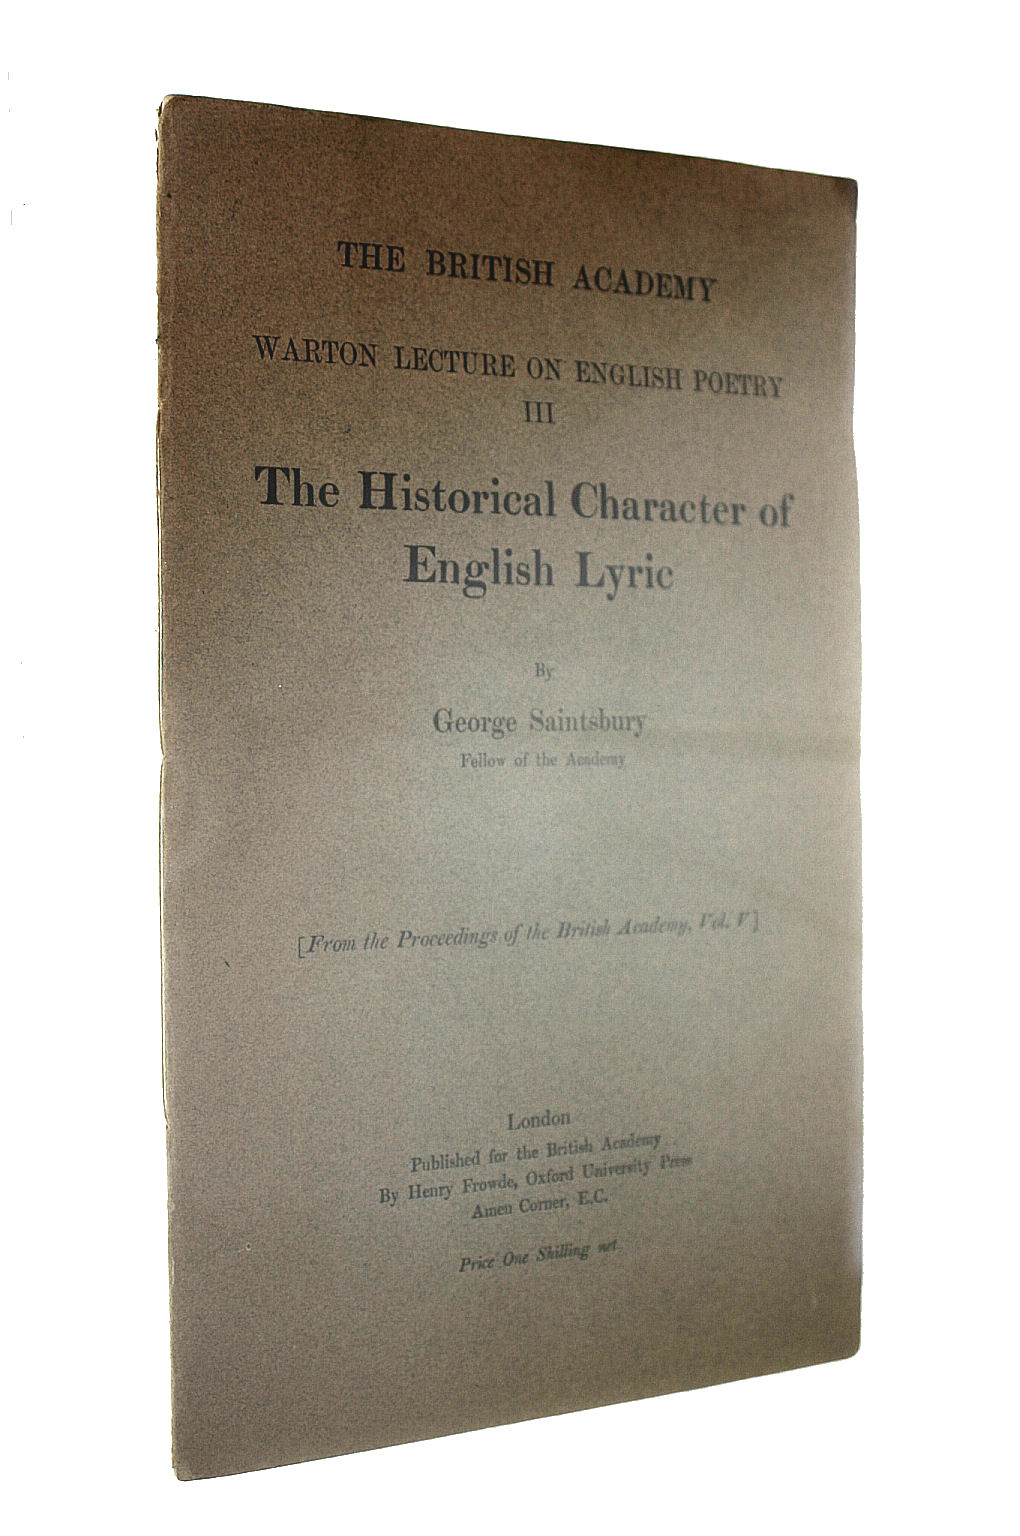 Image for The historical character of the English lyric (Warton lecture on English poetry)